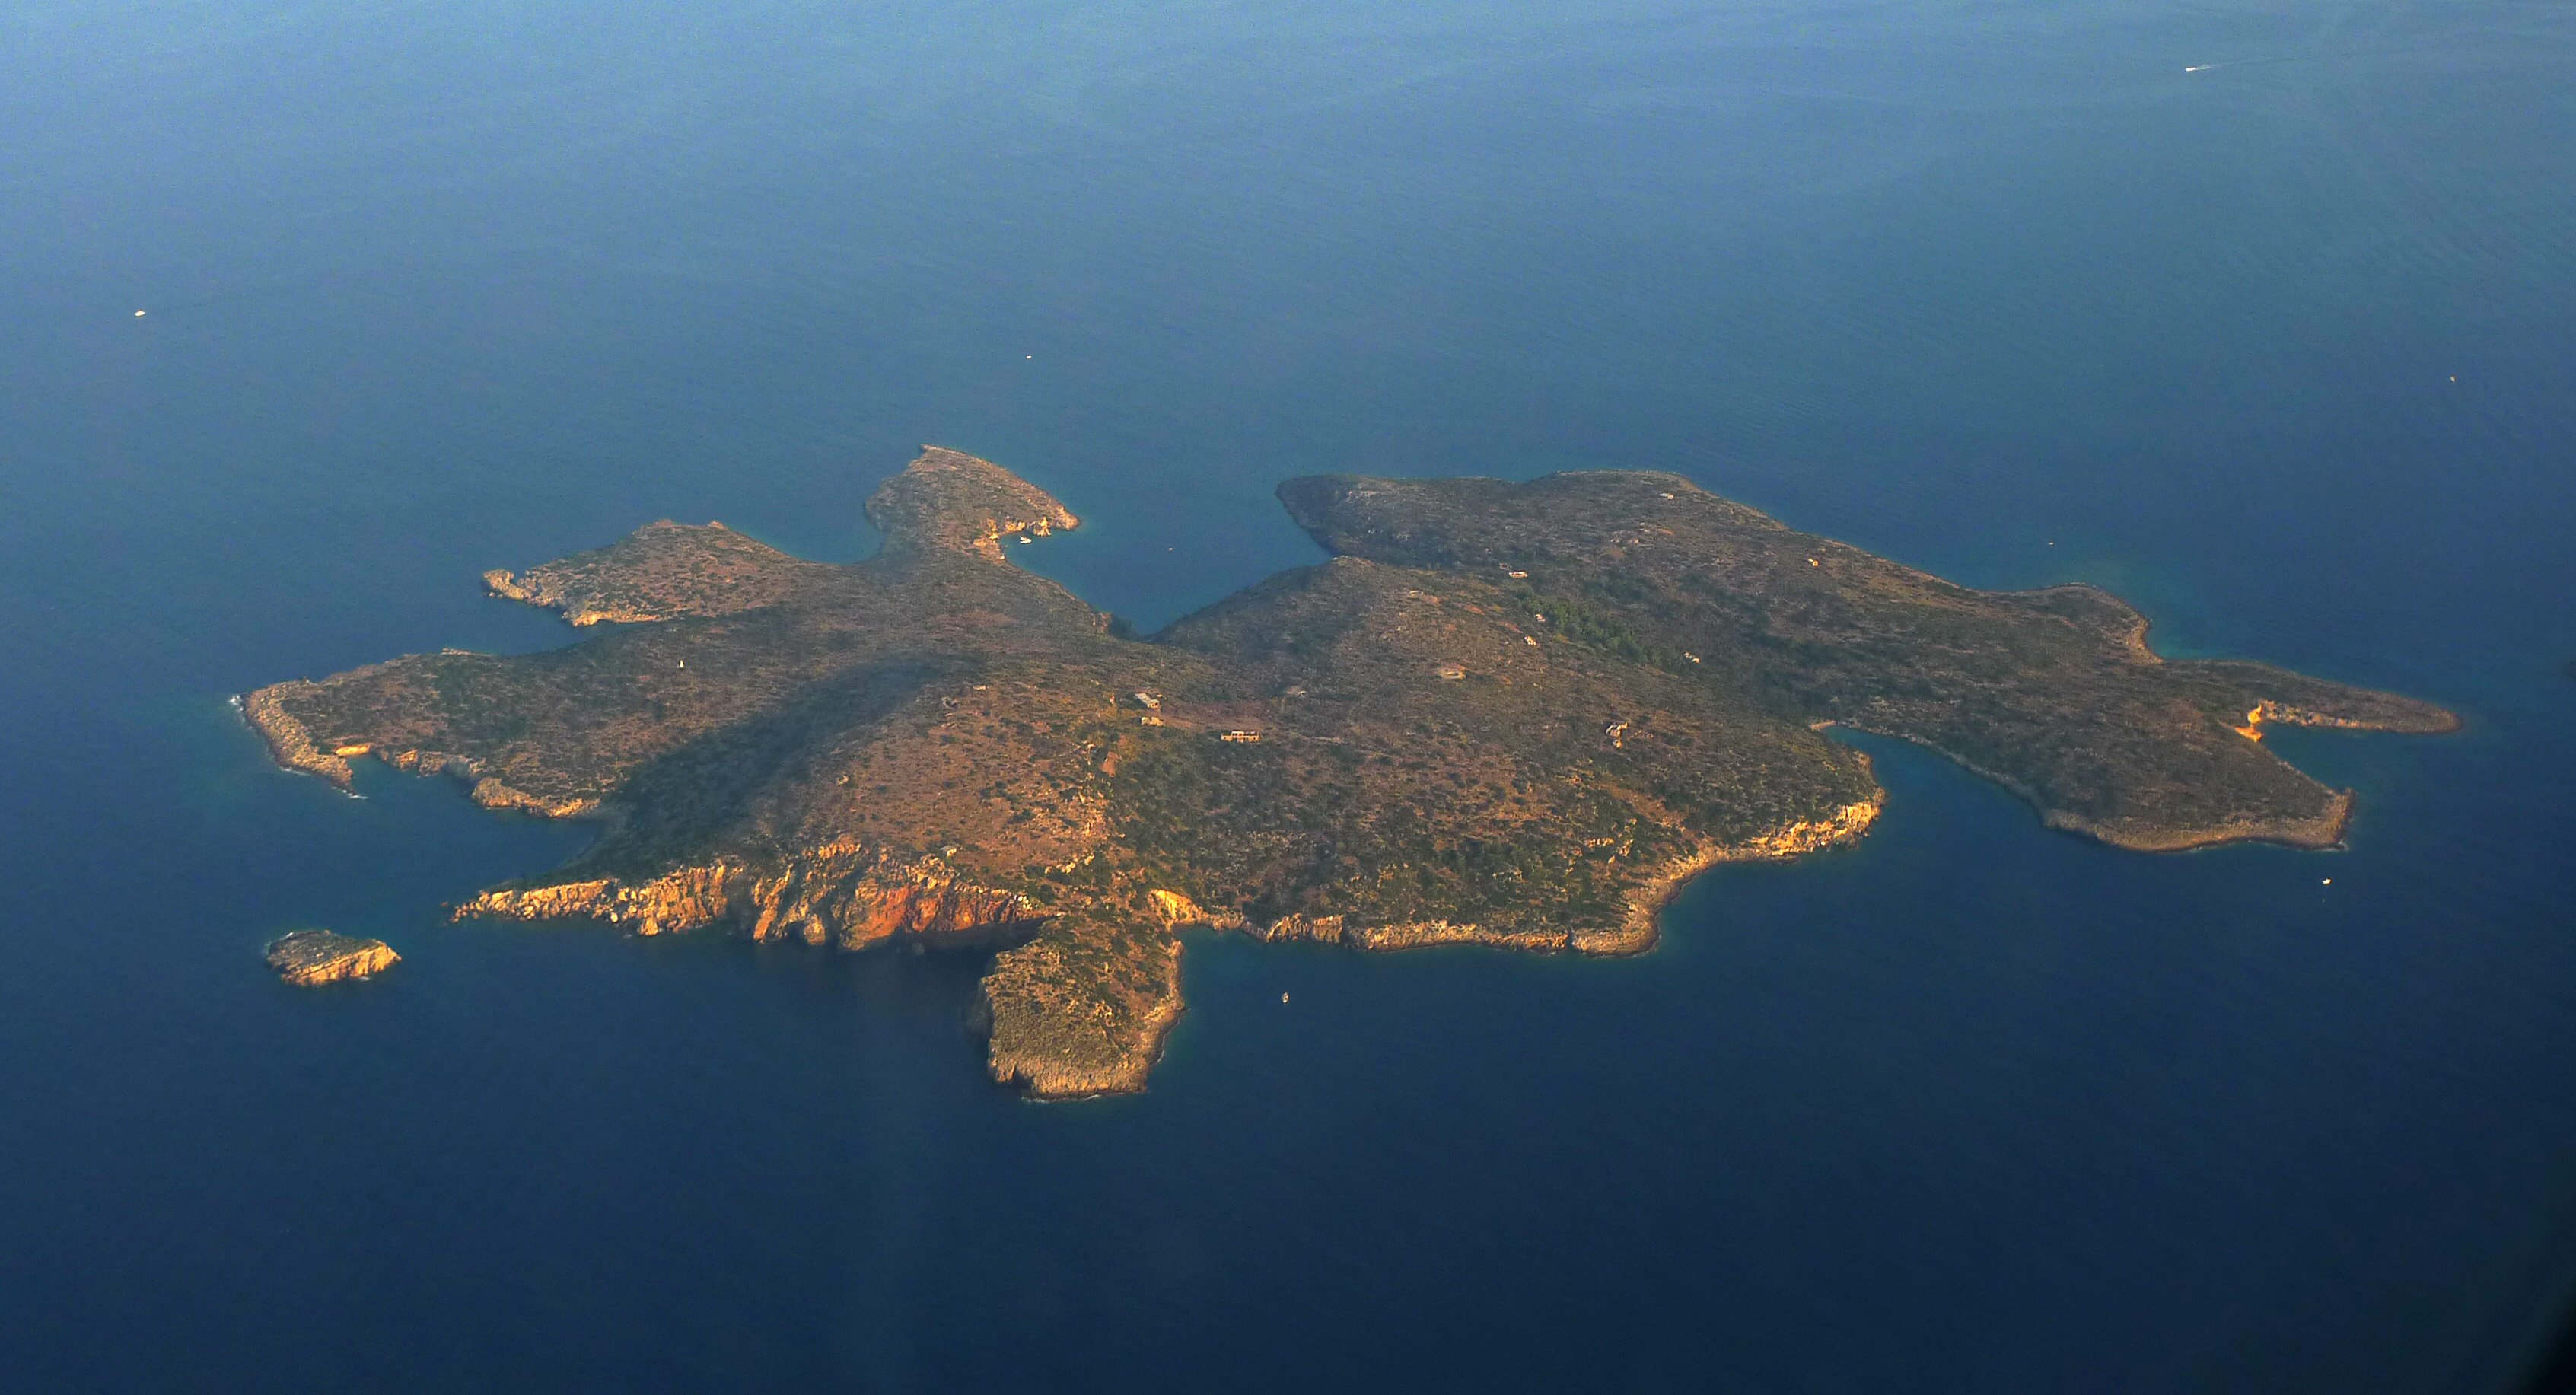 Aerial view of Fleves island